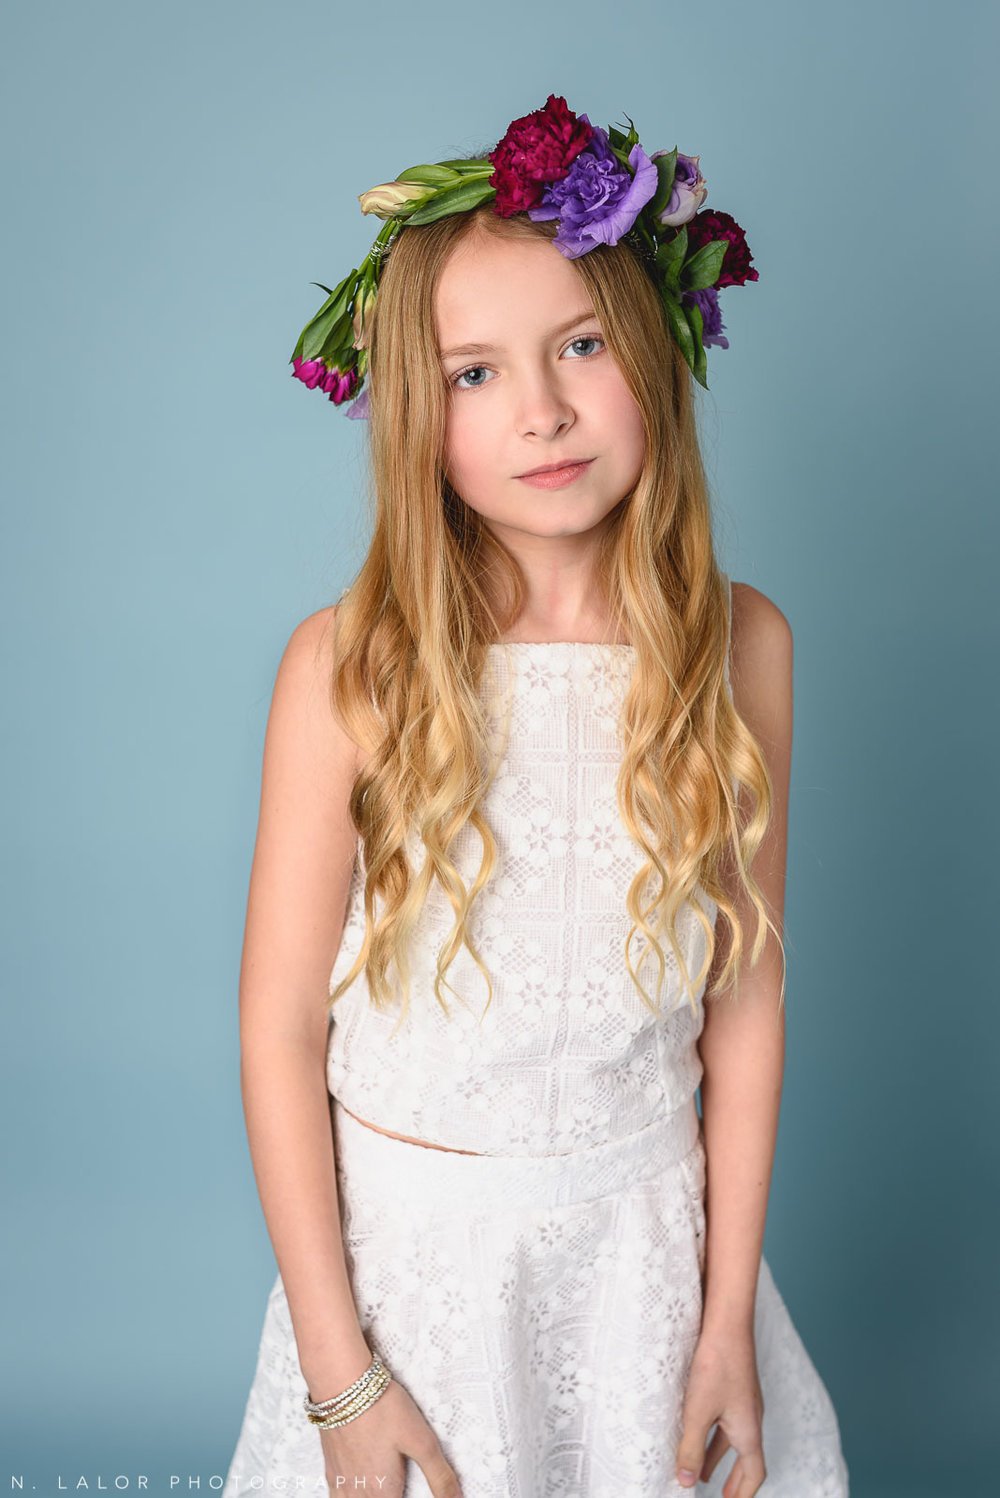 White Stella M'Lia dress and flower crown. Tween fashion portrait by N. Lalor Photography. New Canaan, Connecticut.